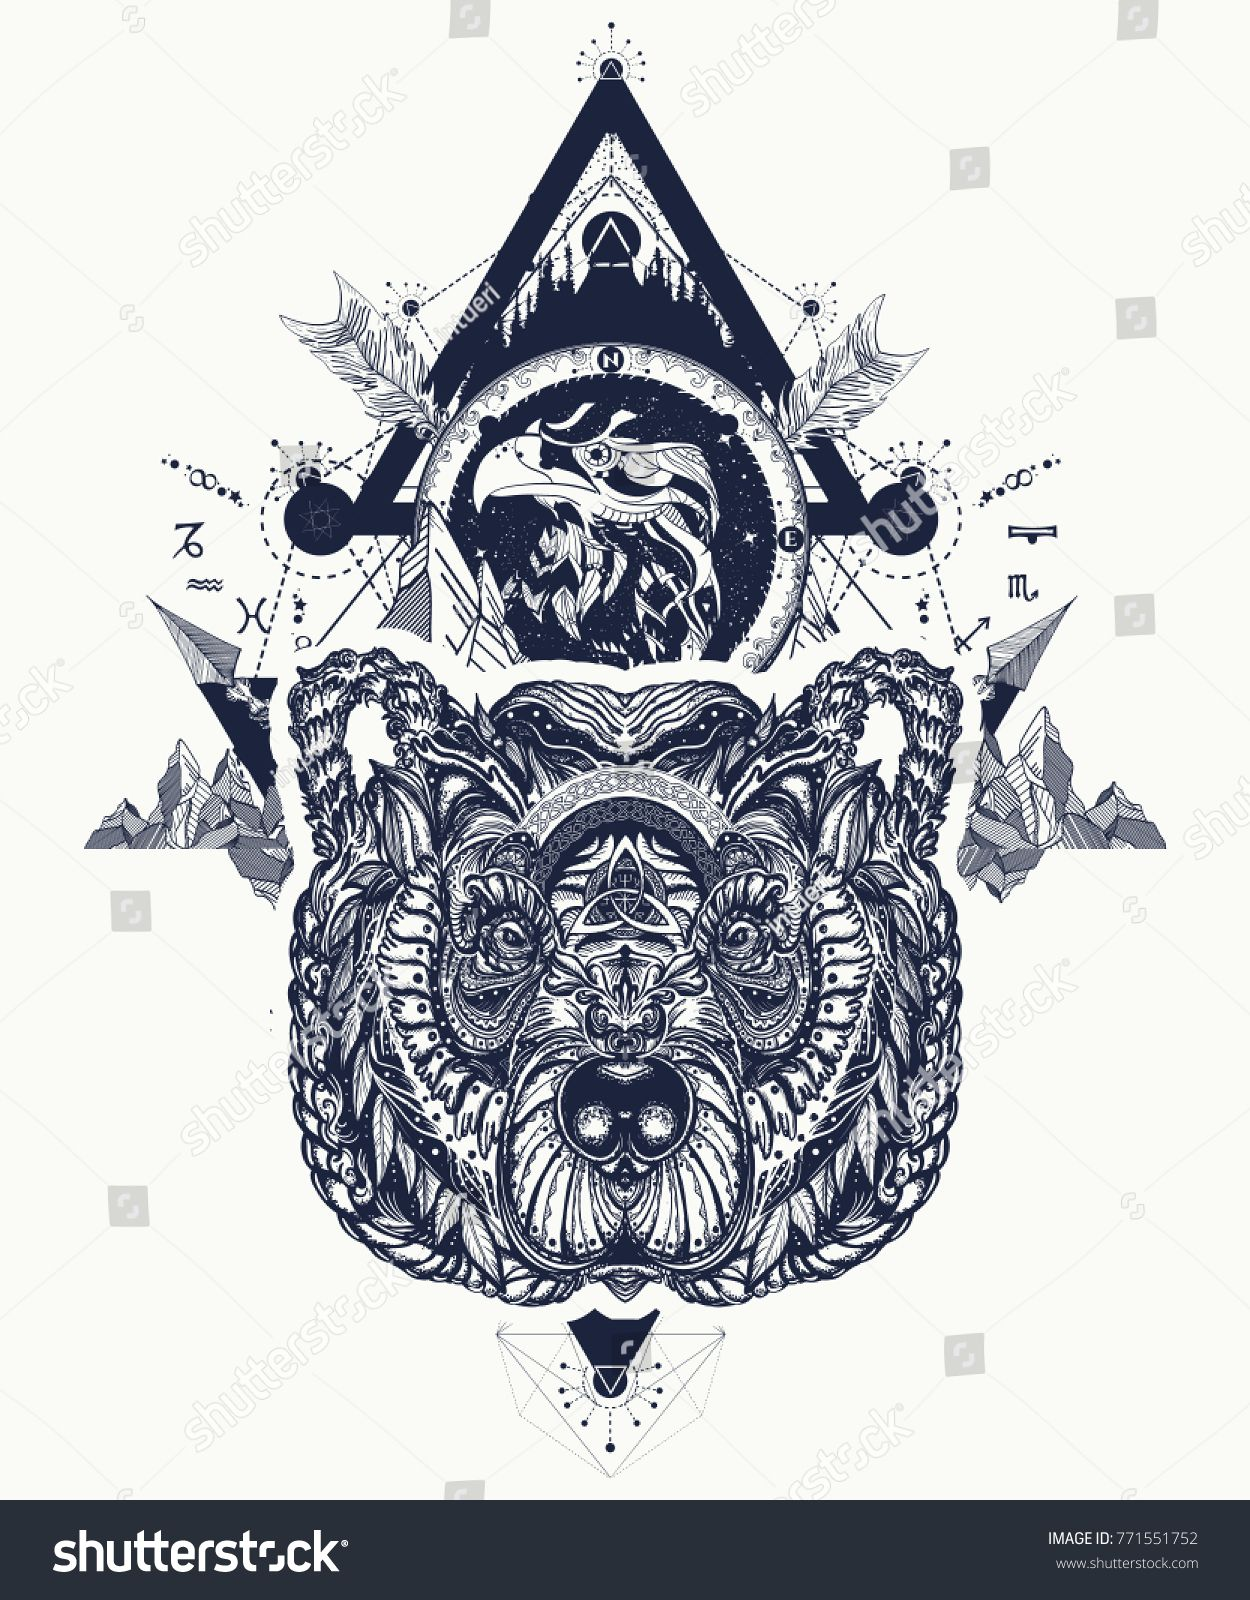 Eagle And Bear Tattoo Art Mountains Crossed Arrows Forest